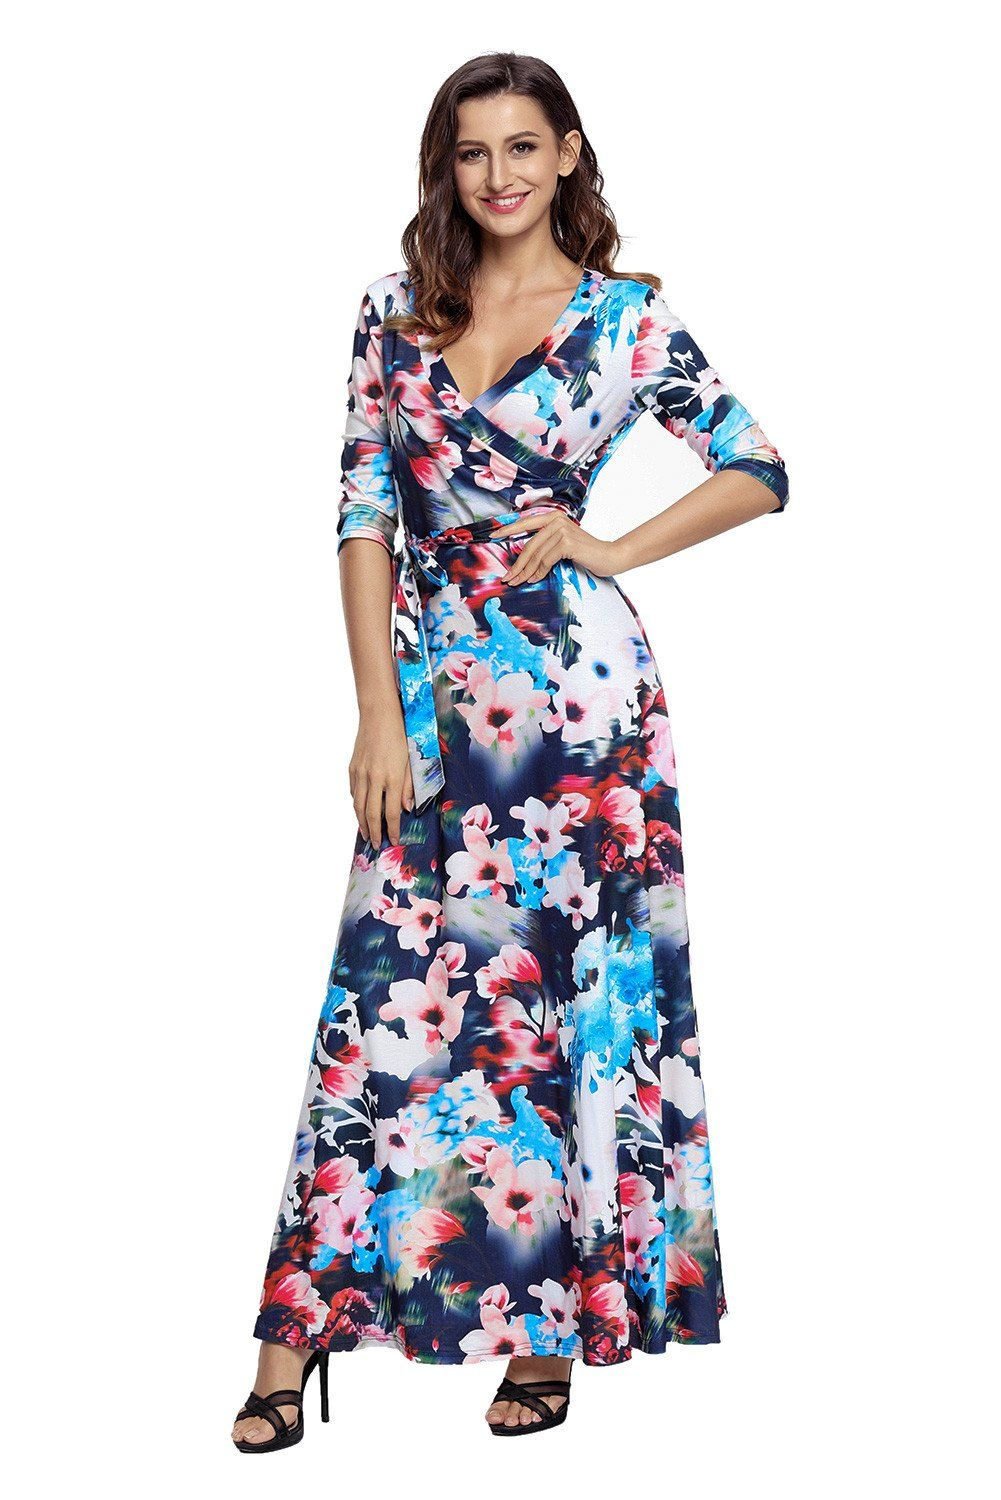 fb25e4c2a625 The Floral Print Wrapped Long Boho Dress is beauty in motion. An amazing  stunning dress that is perfect anytime day or night! Soft jersey fabric  with ...